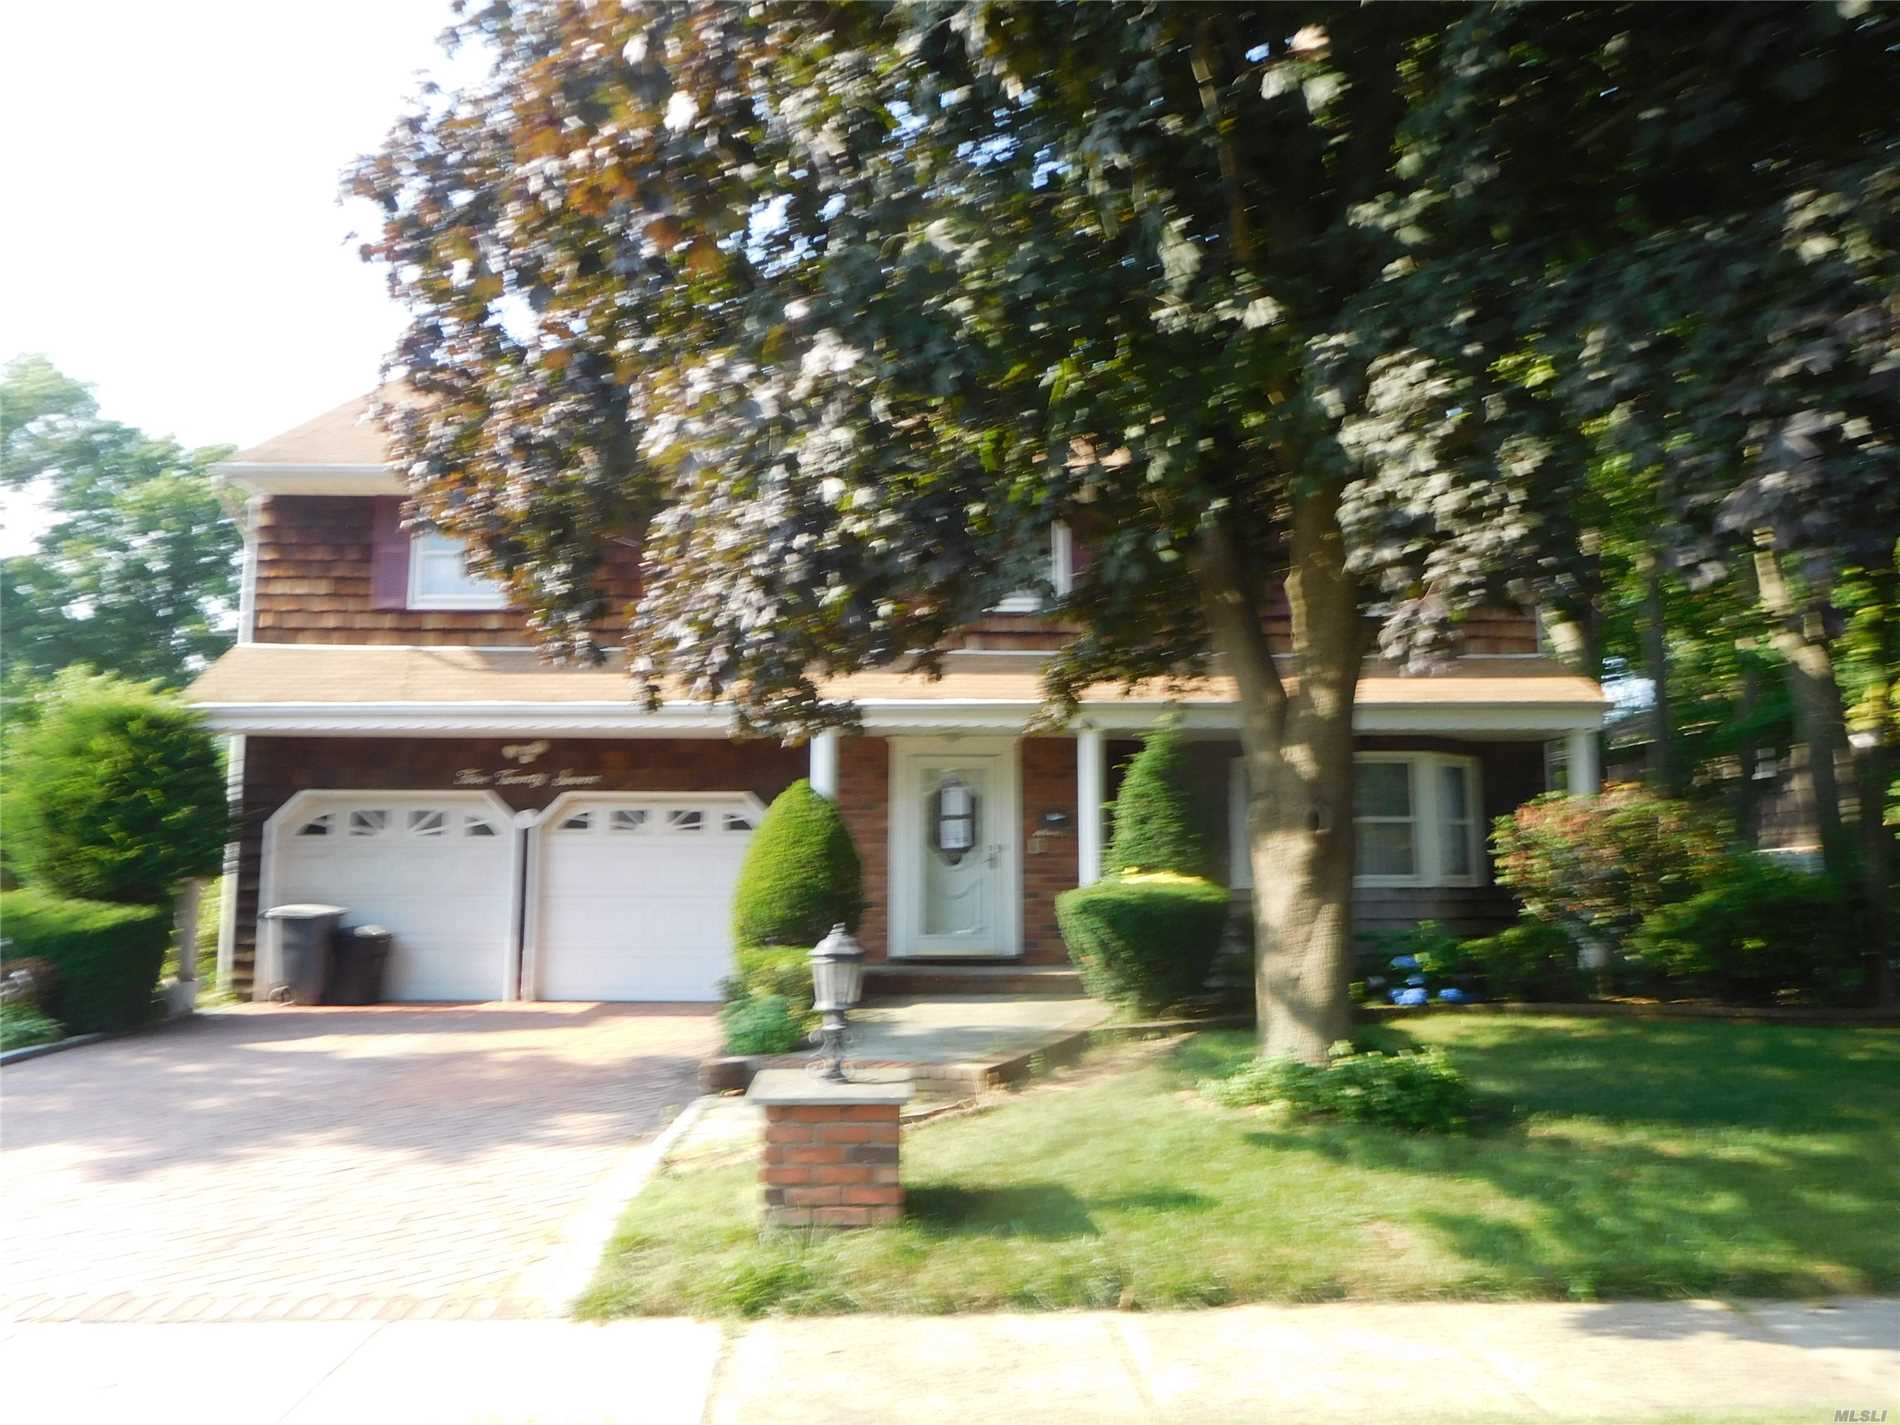 A Rare Beauty, Classic Center Hall Colonial, With 9 Ft Ceiling Height Rooms, In Ground Pool, 4 Bedrooms, 2 Car Garage, And Much More. A Can't Miss Opportunity, With A Little Tlc, To Live A Lavishly, Yet Affordable Lifestyle.  During The Pre-6 Month Marketable Time Period, Seller Must Comply With Hud Guidelines 24 Cfr 206.125.